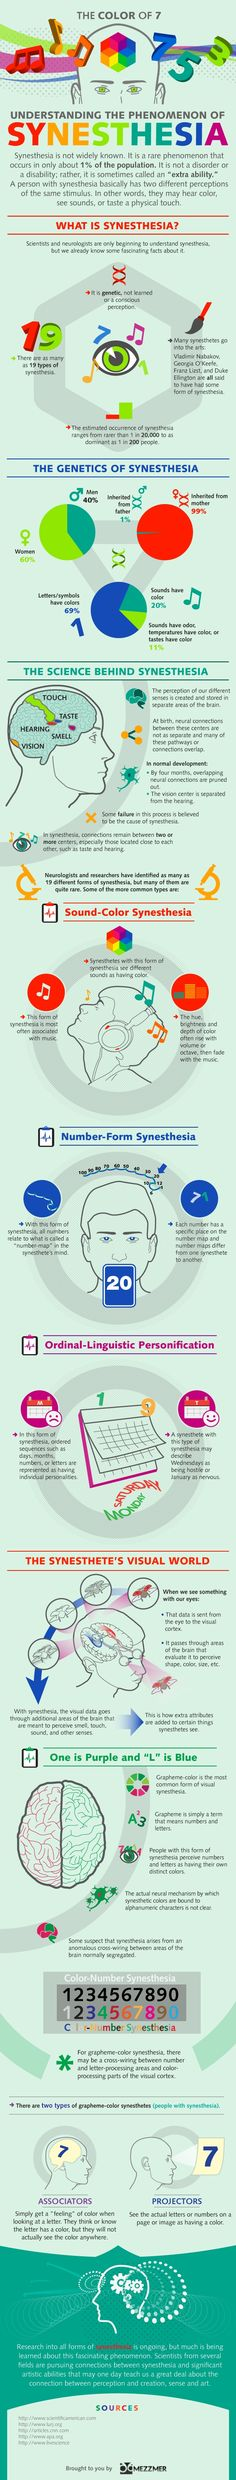 Understanding The Phenomenon Of Synesthesia [Infographic] - Data Visualization…